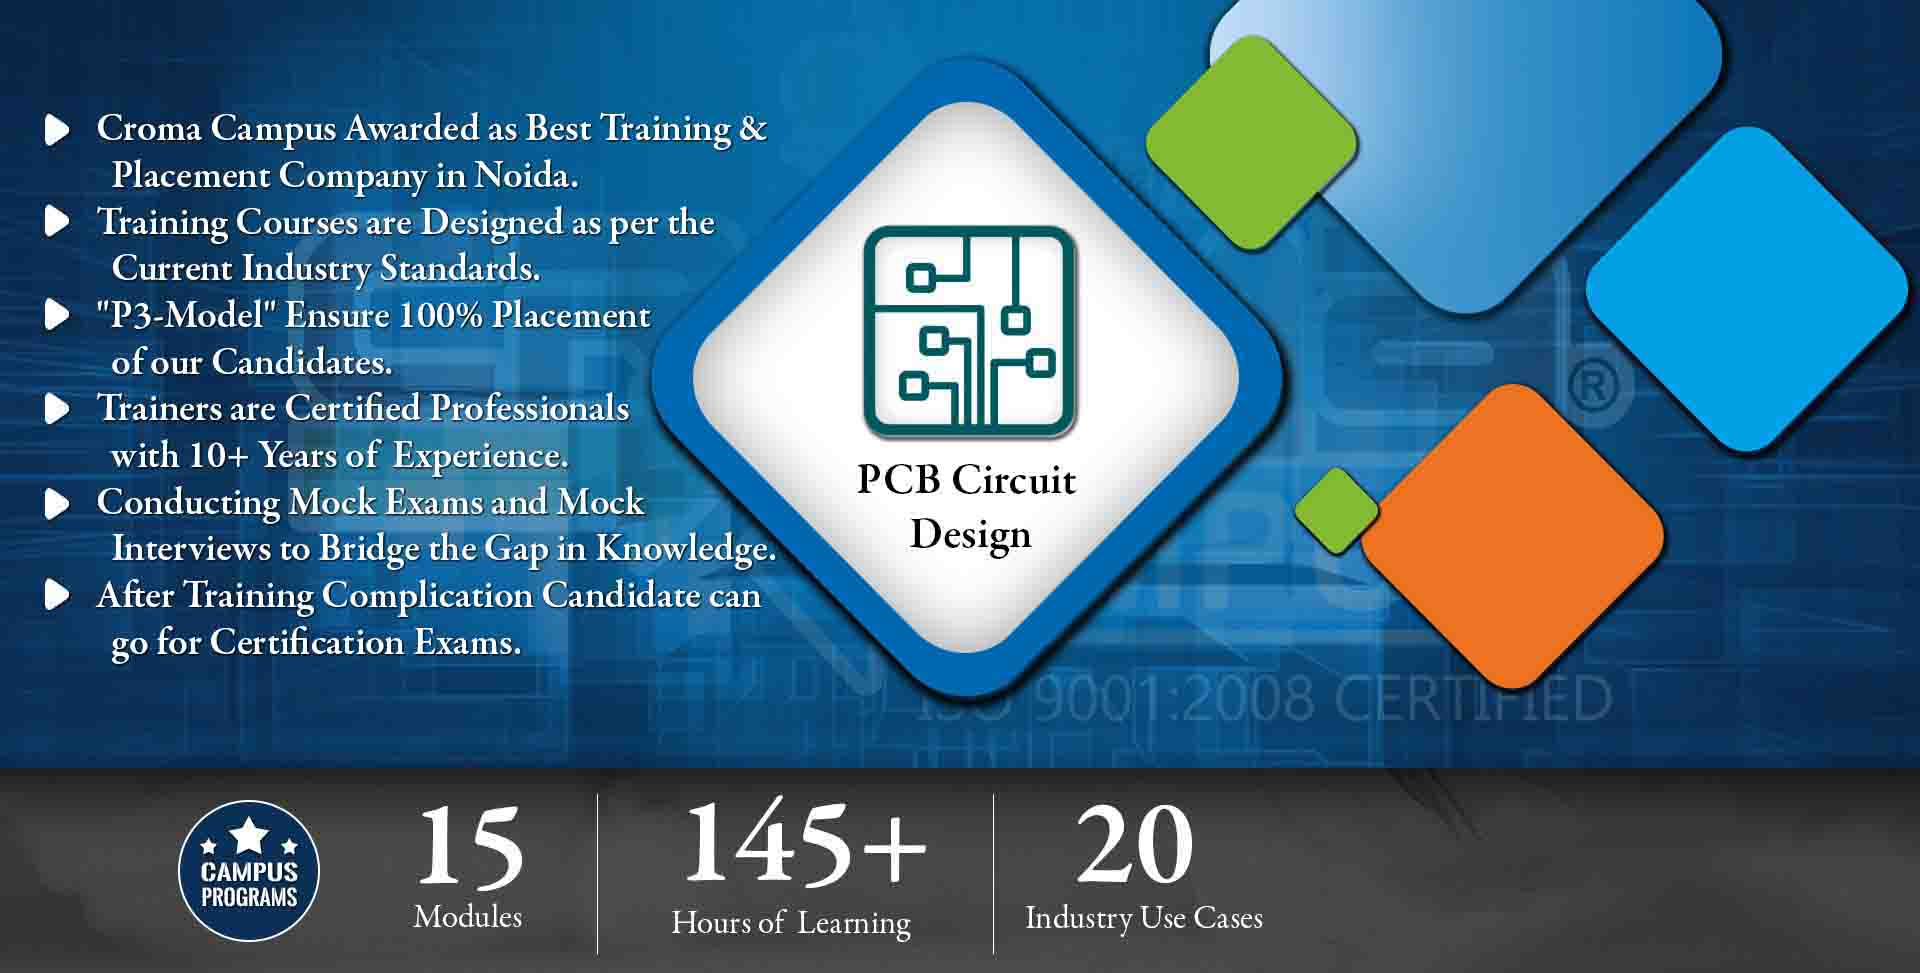 Pcb Circuit Design Training In Noida All New Proteus 8 Designing And Simulation Software Blogging Croma Campus